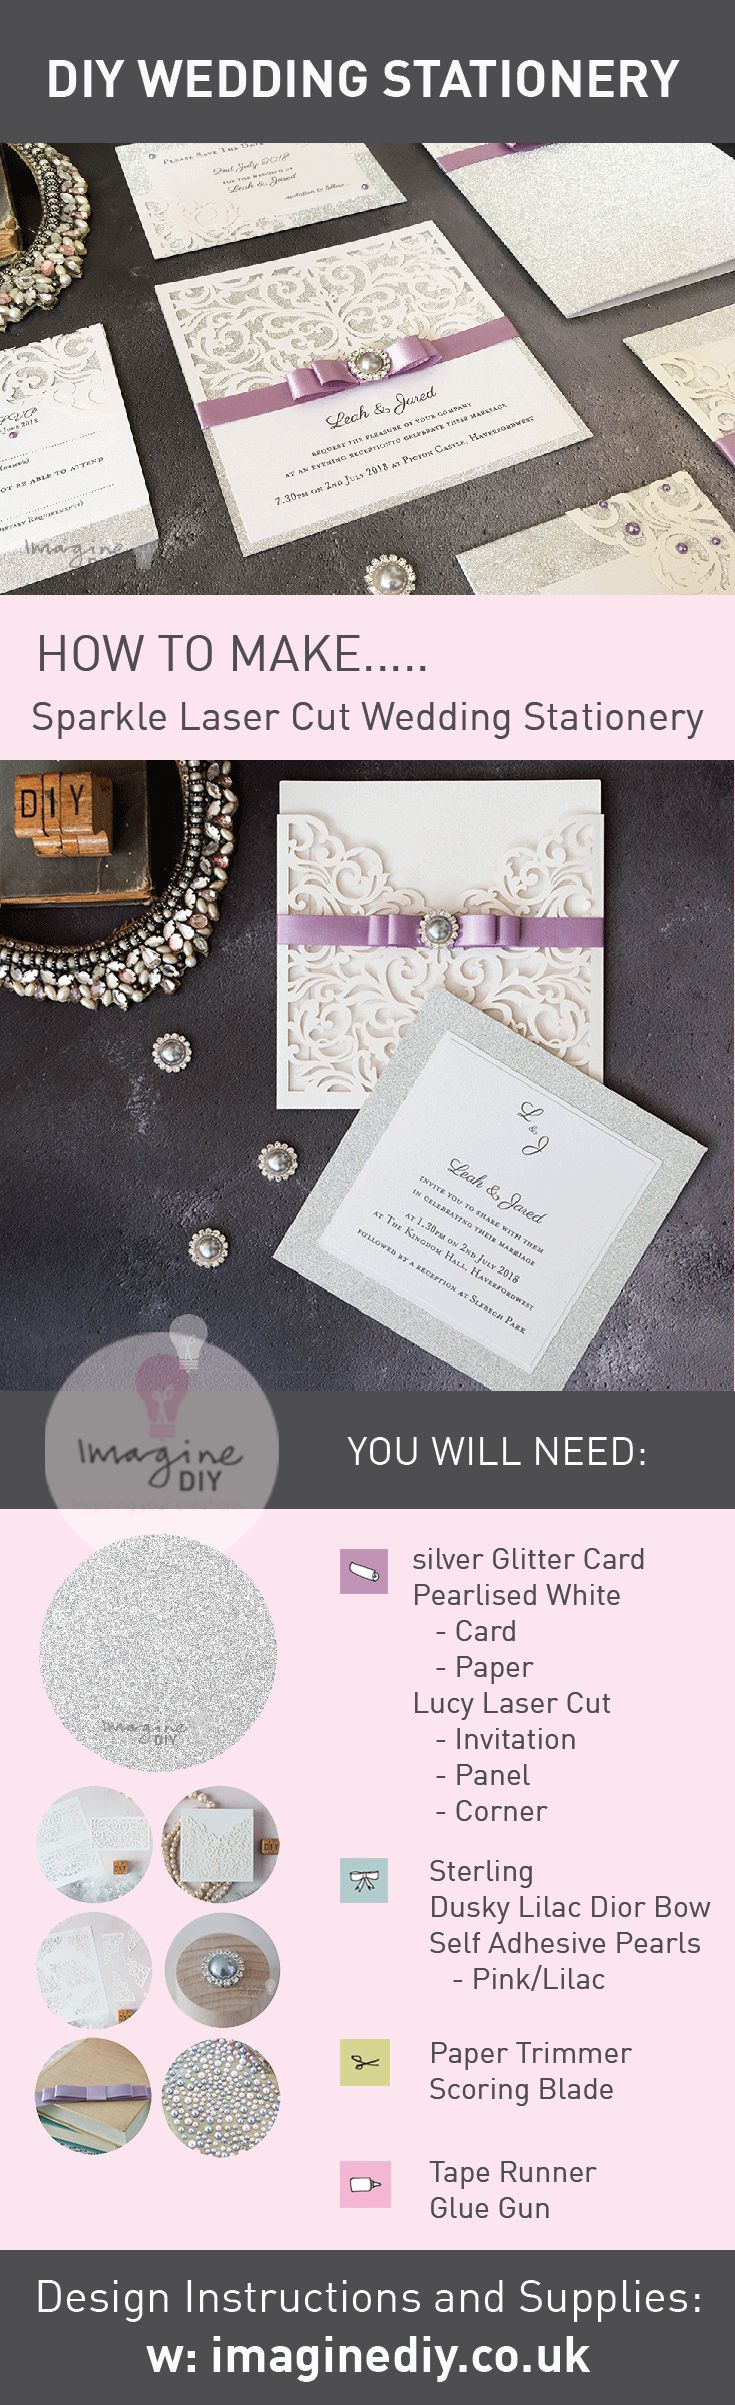 How to make your own wedding stationery.  DIY wedding stationery in silver.  Sparkling wedding stationery and invitations.  Silver, Lilac, White.  DIY wedding ideas.  Design guide, instructions and products available from Imagine DIY  #imaginediy #diywedding #diyweddingideas #weddingideas #lilacwedding #silverwedding #glitterwedding #diyweddingstationery #diyweddinginvites #diyweddinginvitations #weddinginvitations #weddingstationery